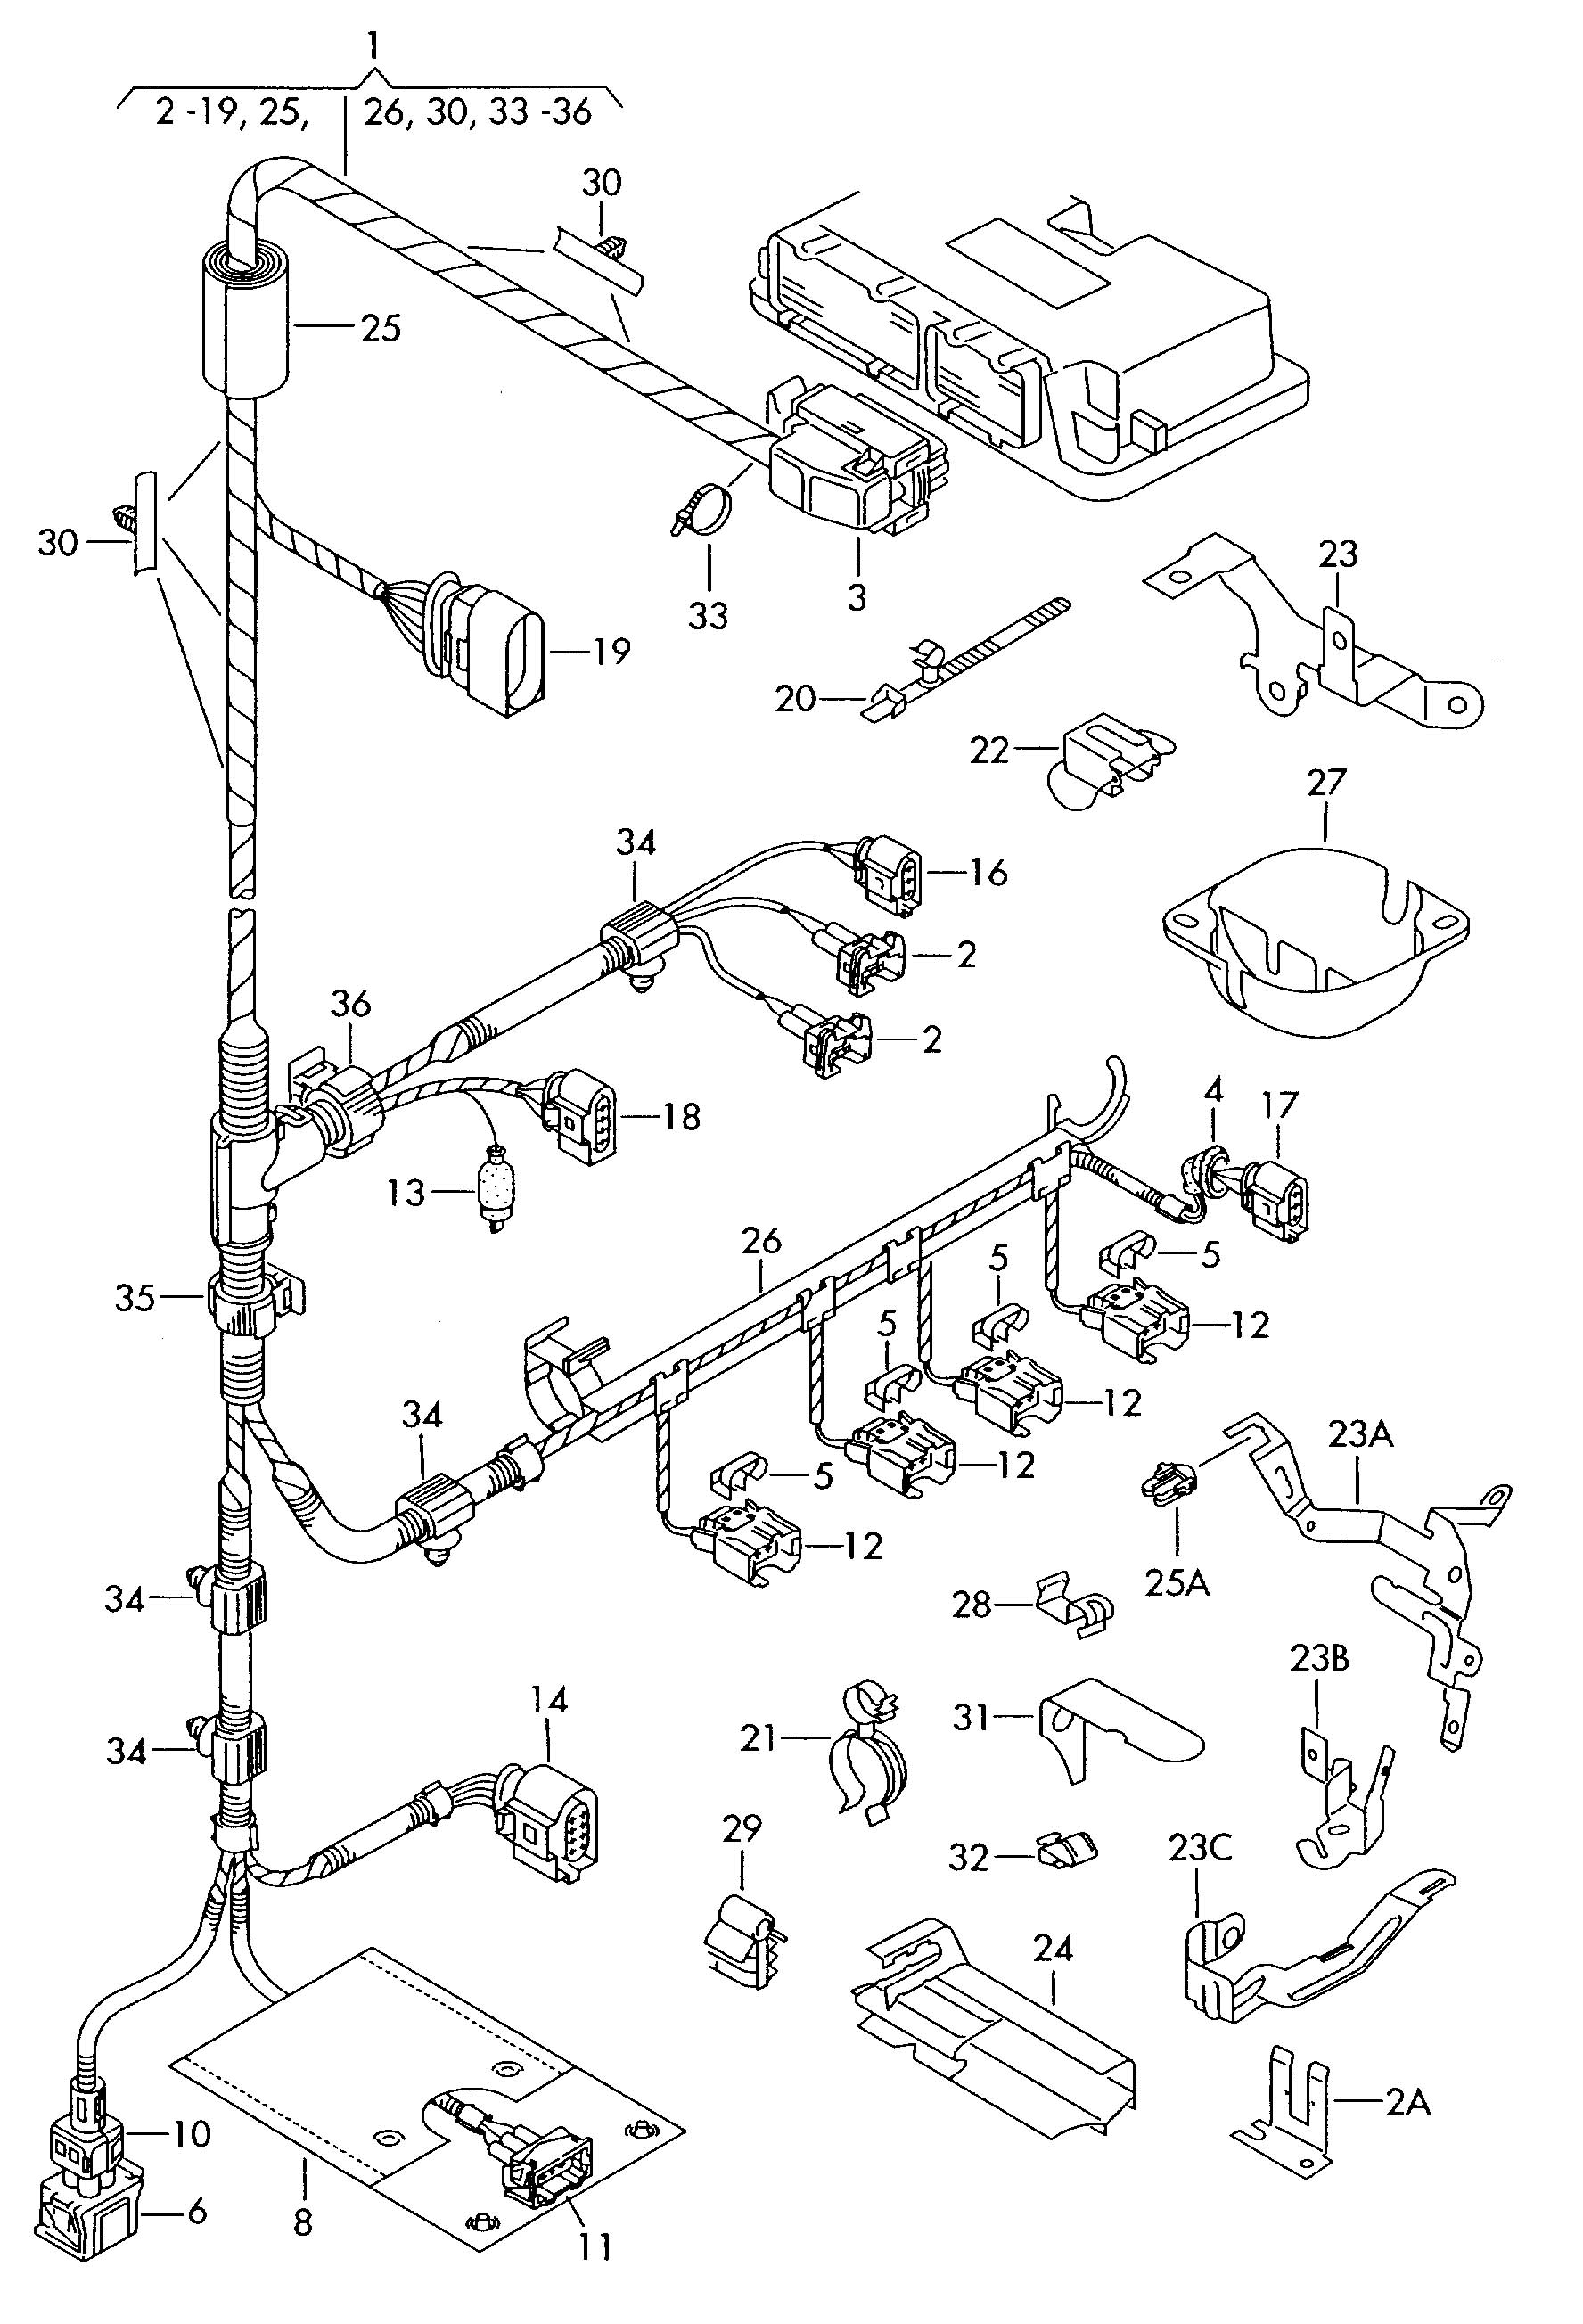 harness for engine single parts also use  also use